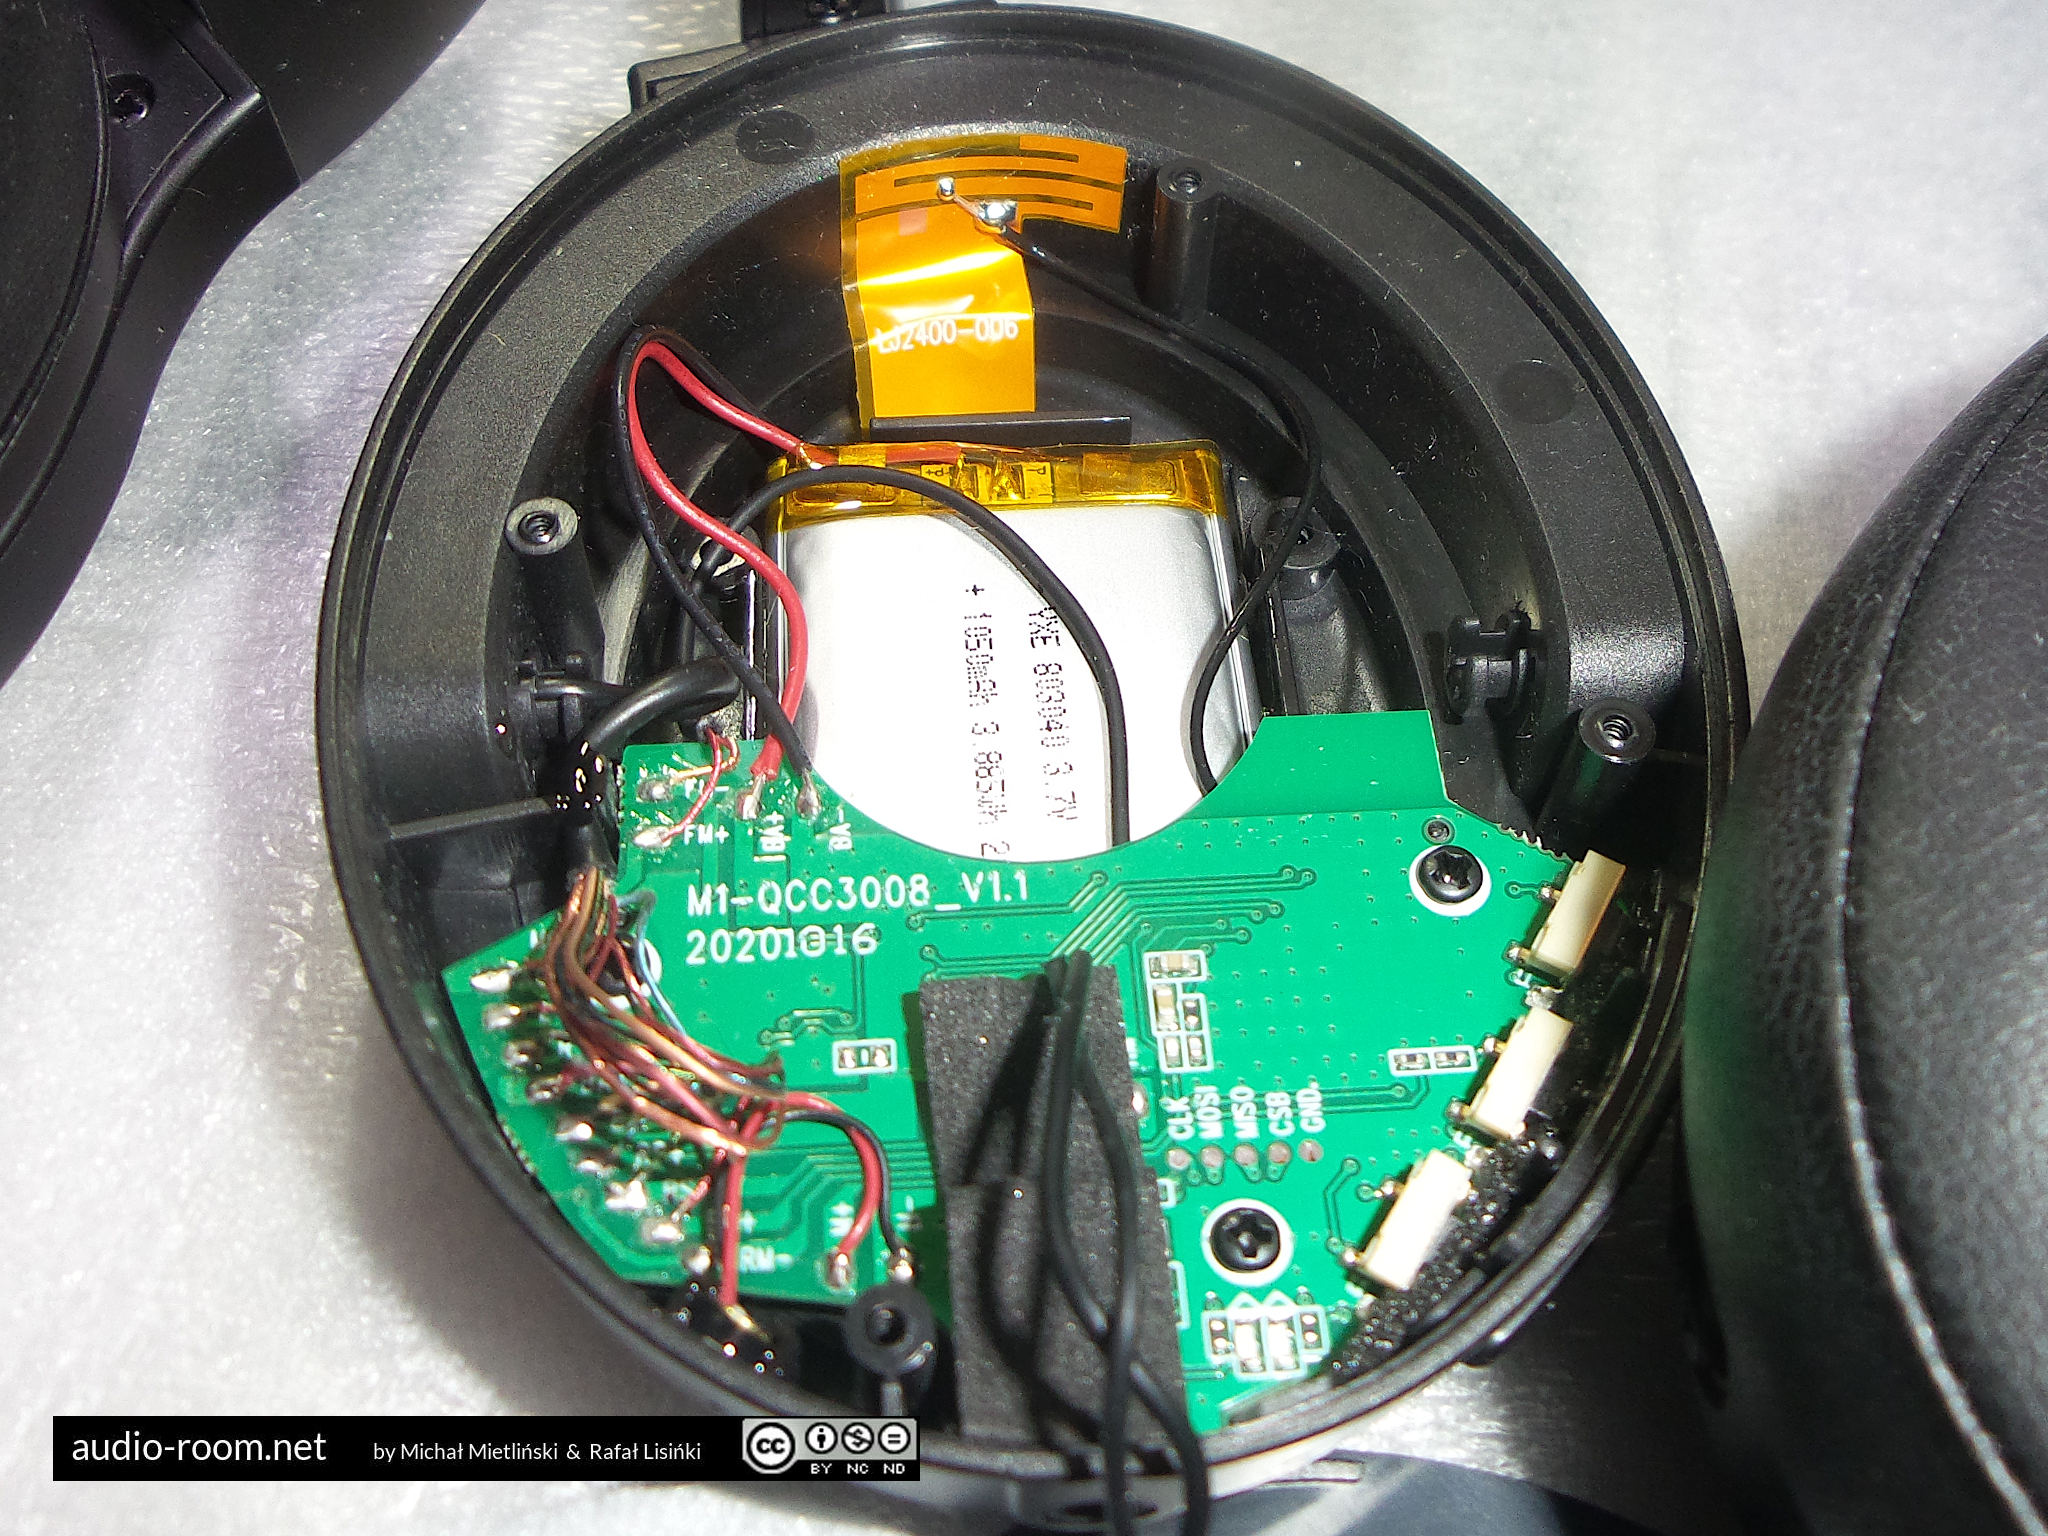 Valco VMK 20 - right cup, damping removed, BT board, battery, antenna